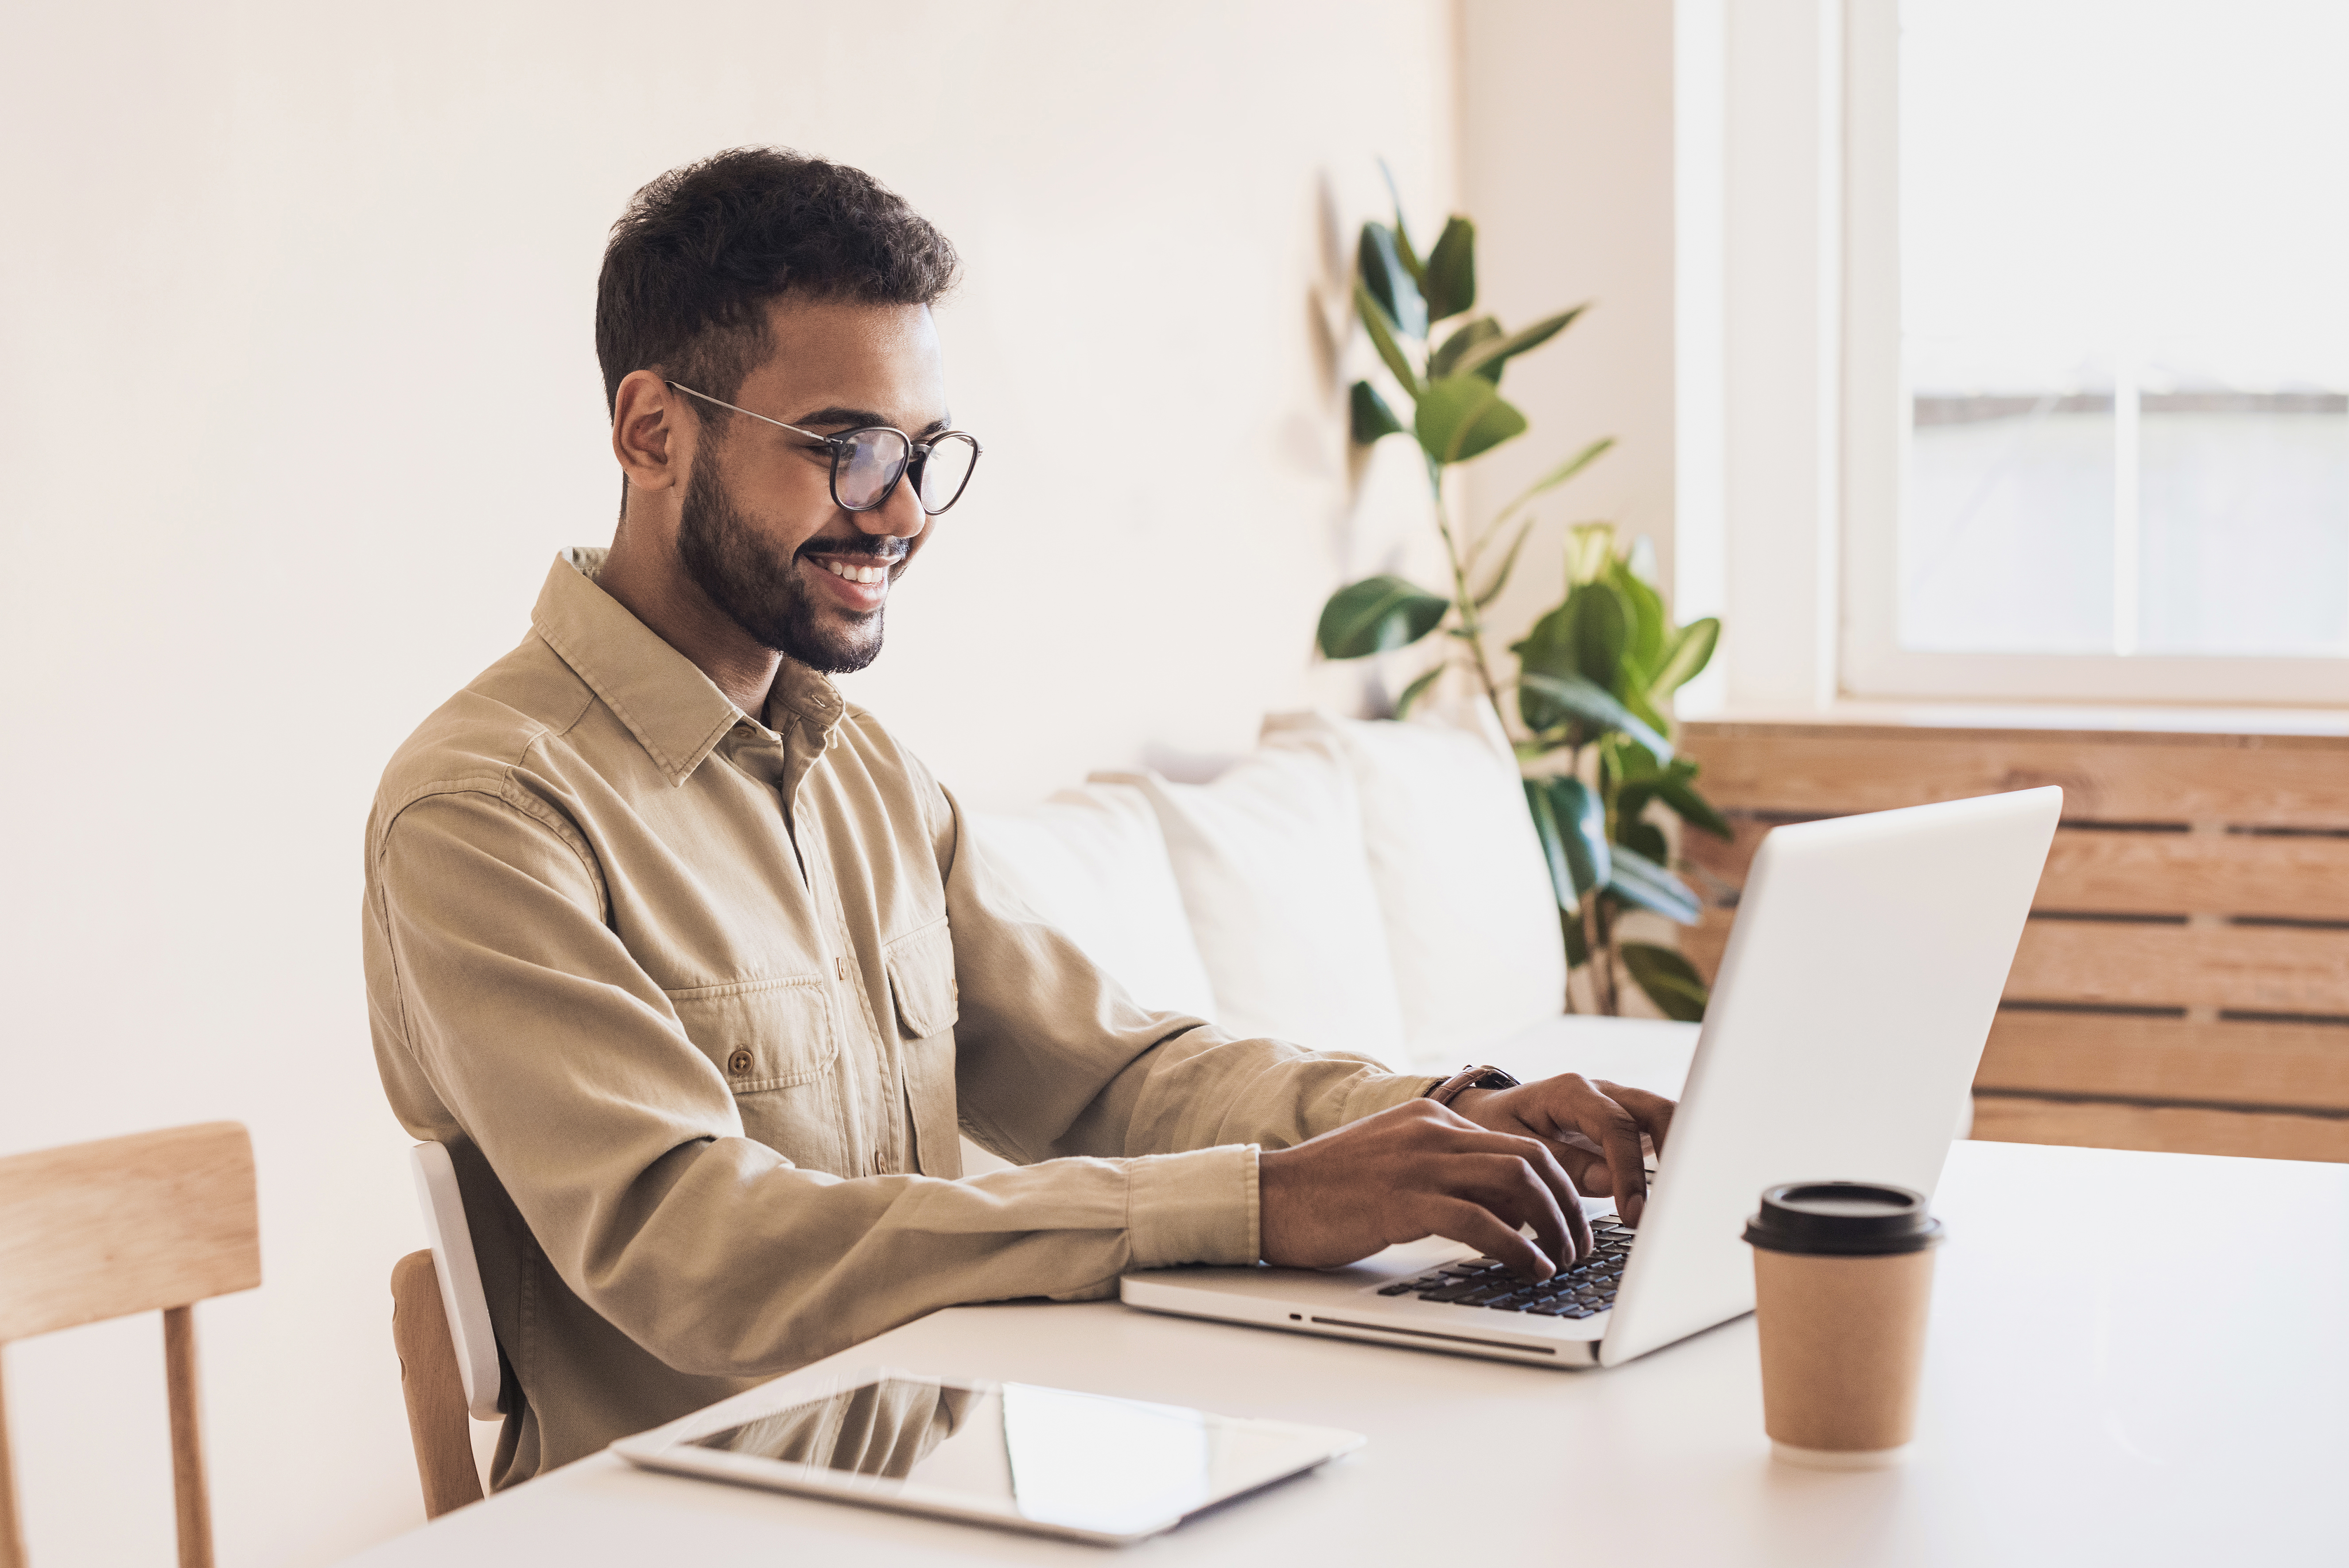 Business man typing on laptop computer